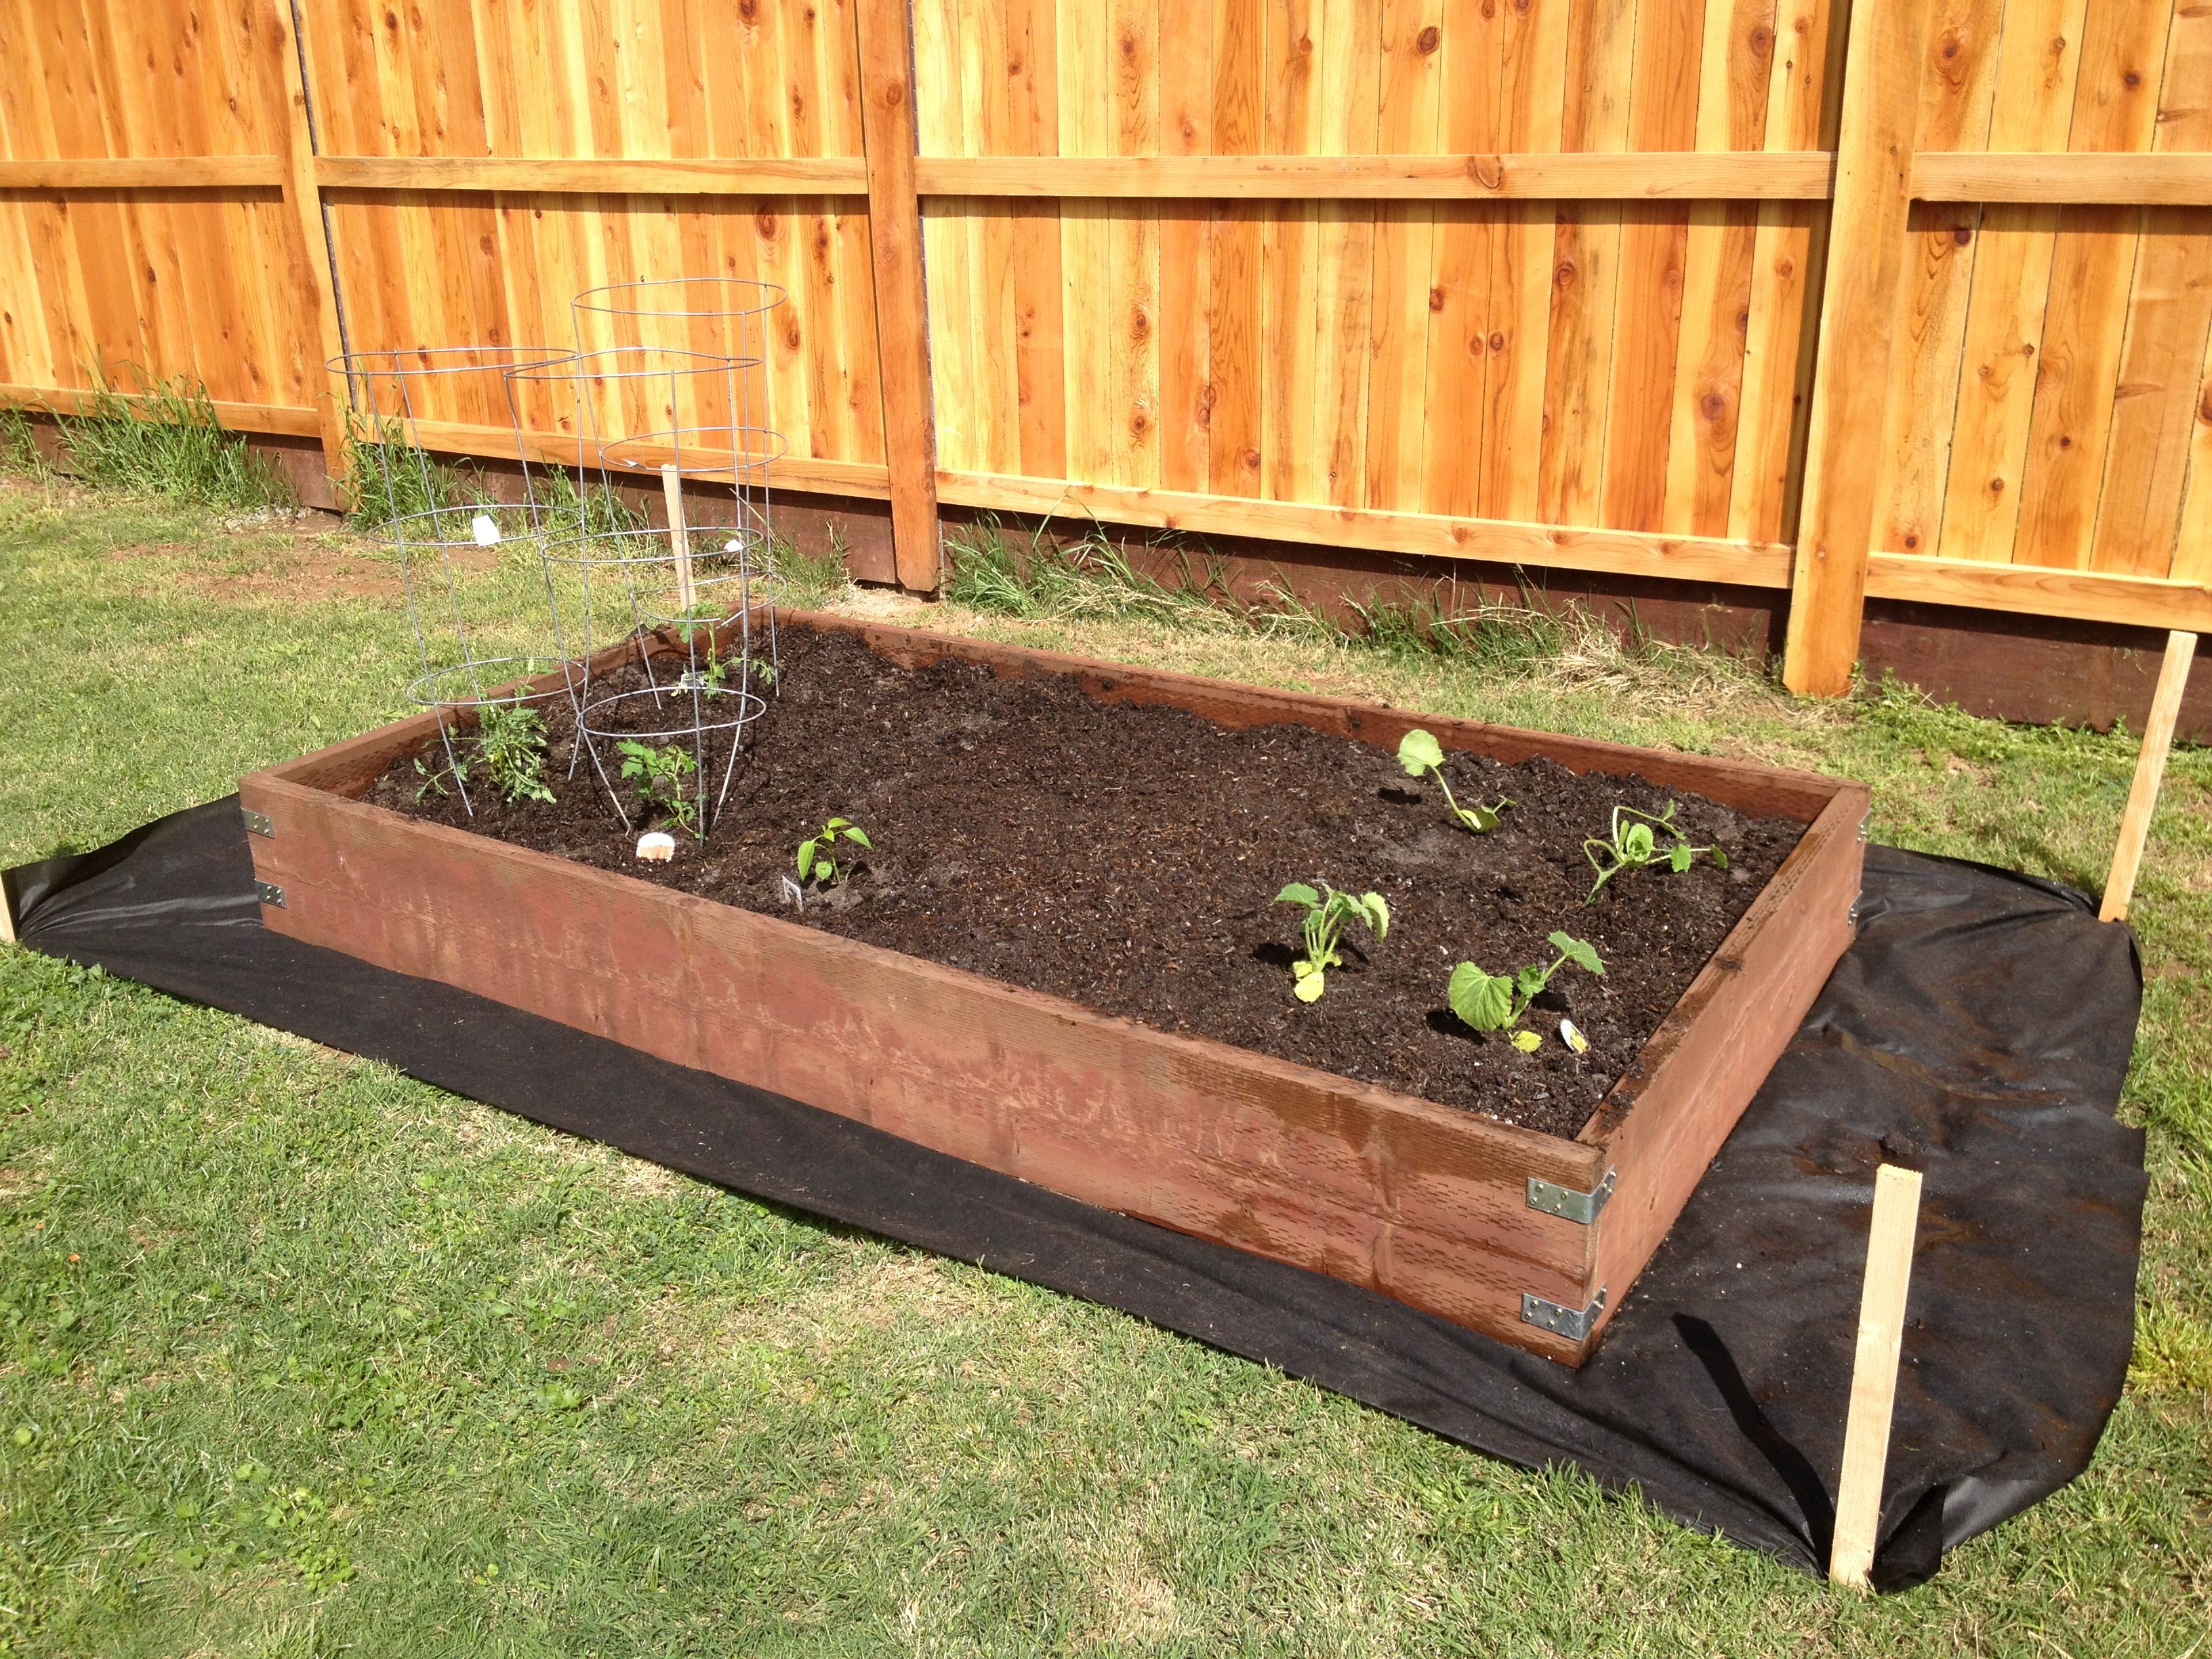 Garden Box Made Using 2x12 Pressure Treated Wood And L Brackets